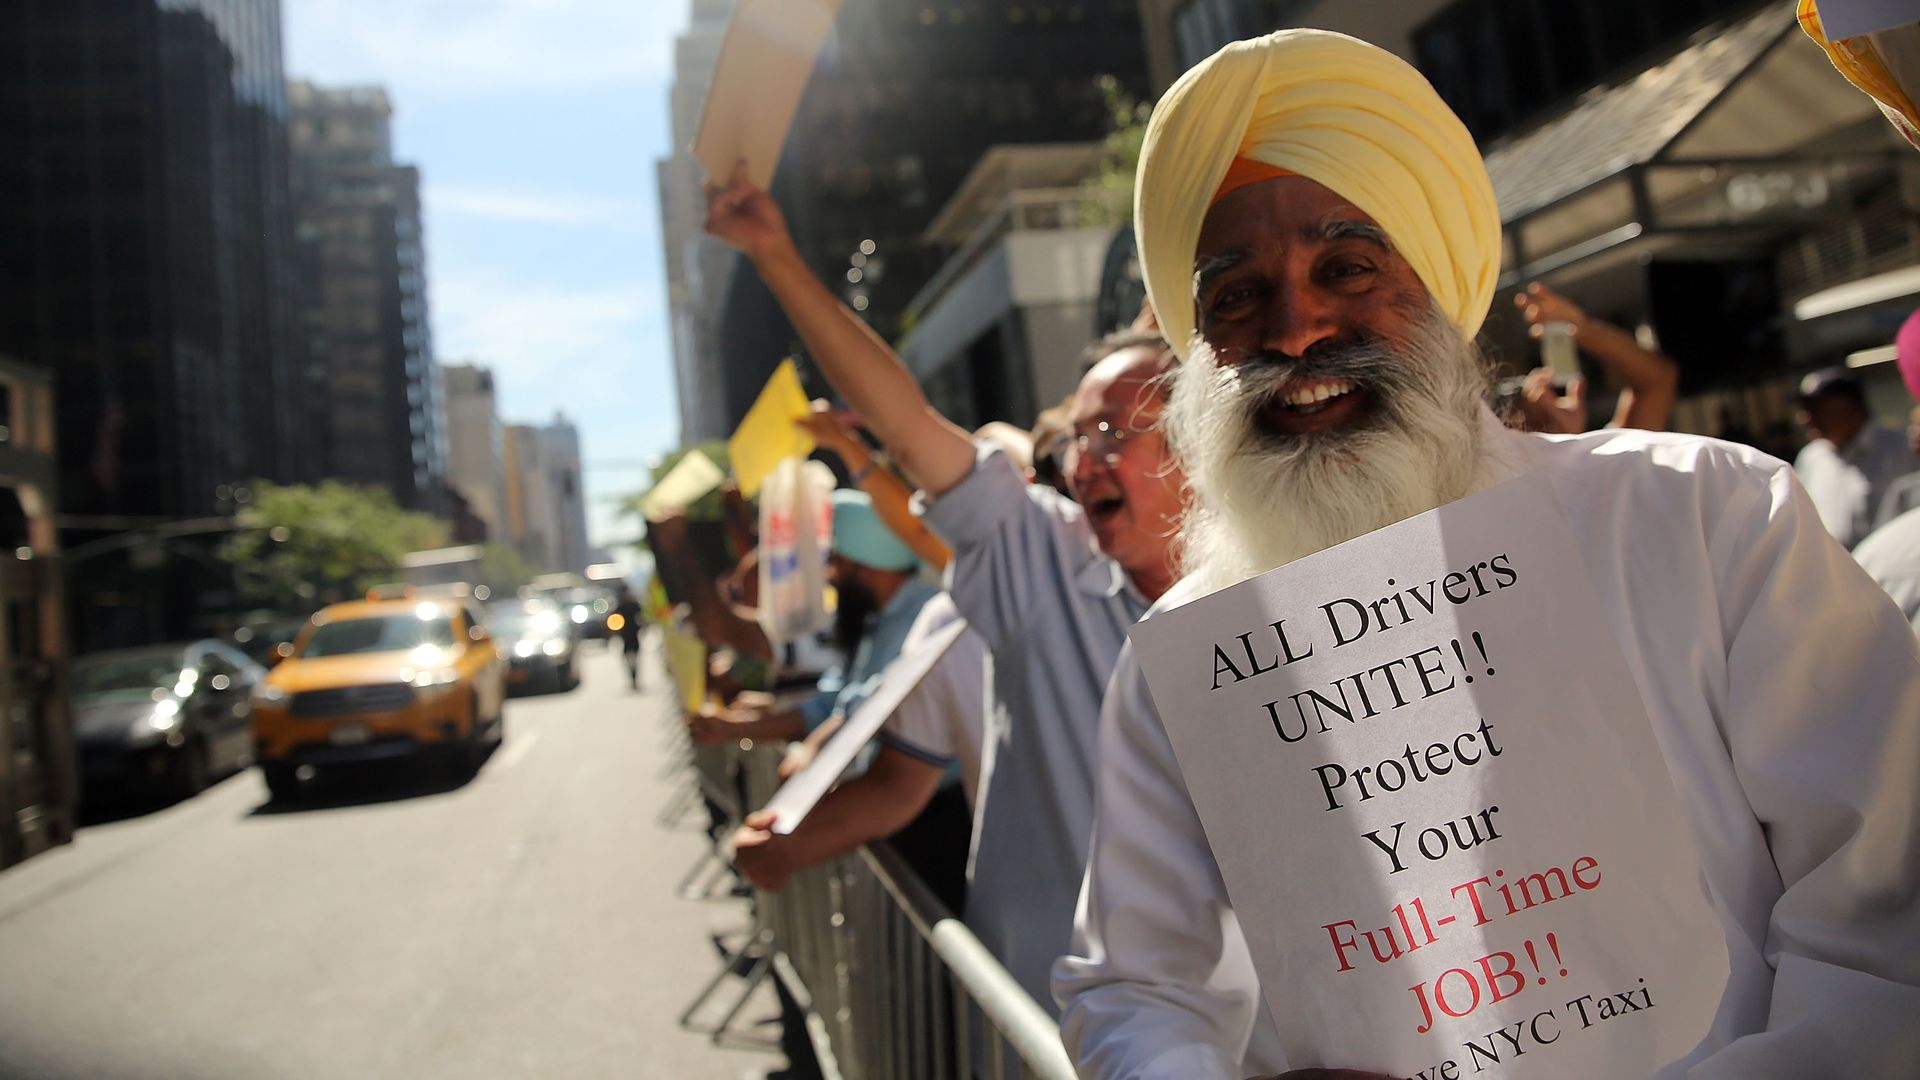 "NYC taxi drivers protesting. One holds a sign: ""ALL DRIVERS UNITE!! Protect your Full-Time JOB!"""